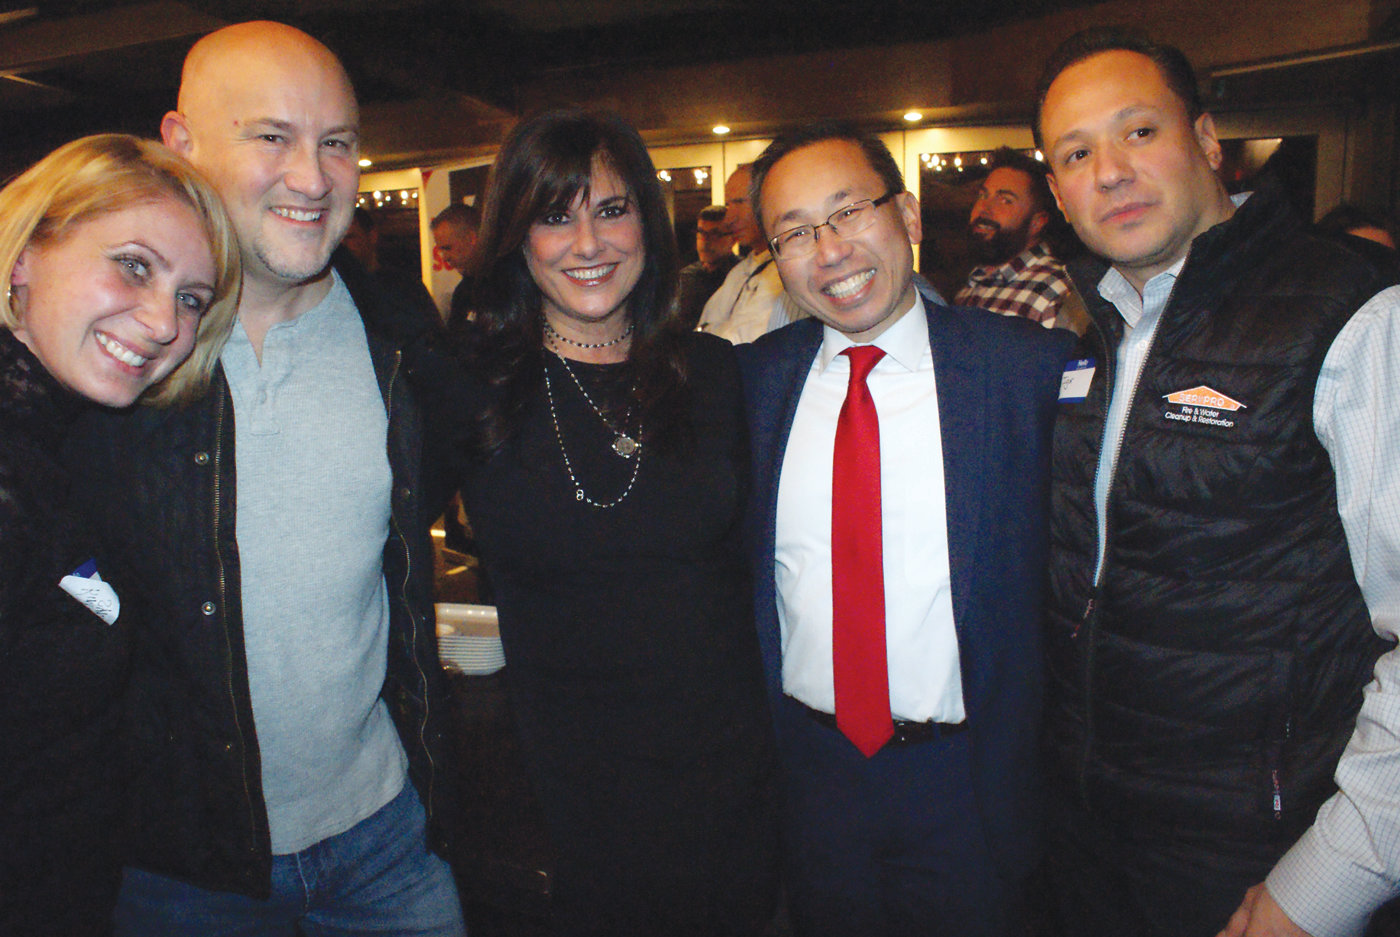 NIGHT OUT: From left, Kim Falconero, Mike Picard, Pat Paolino Cruz, Mayor Allan Fung and Igor Marroquin share a moment during the recent networking event at Chapel Grille.